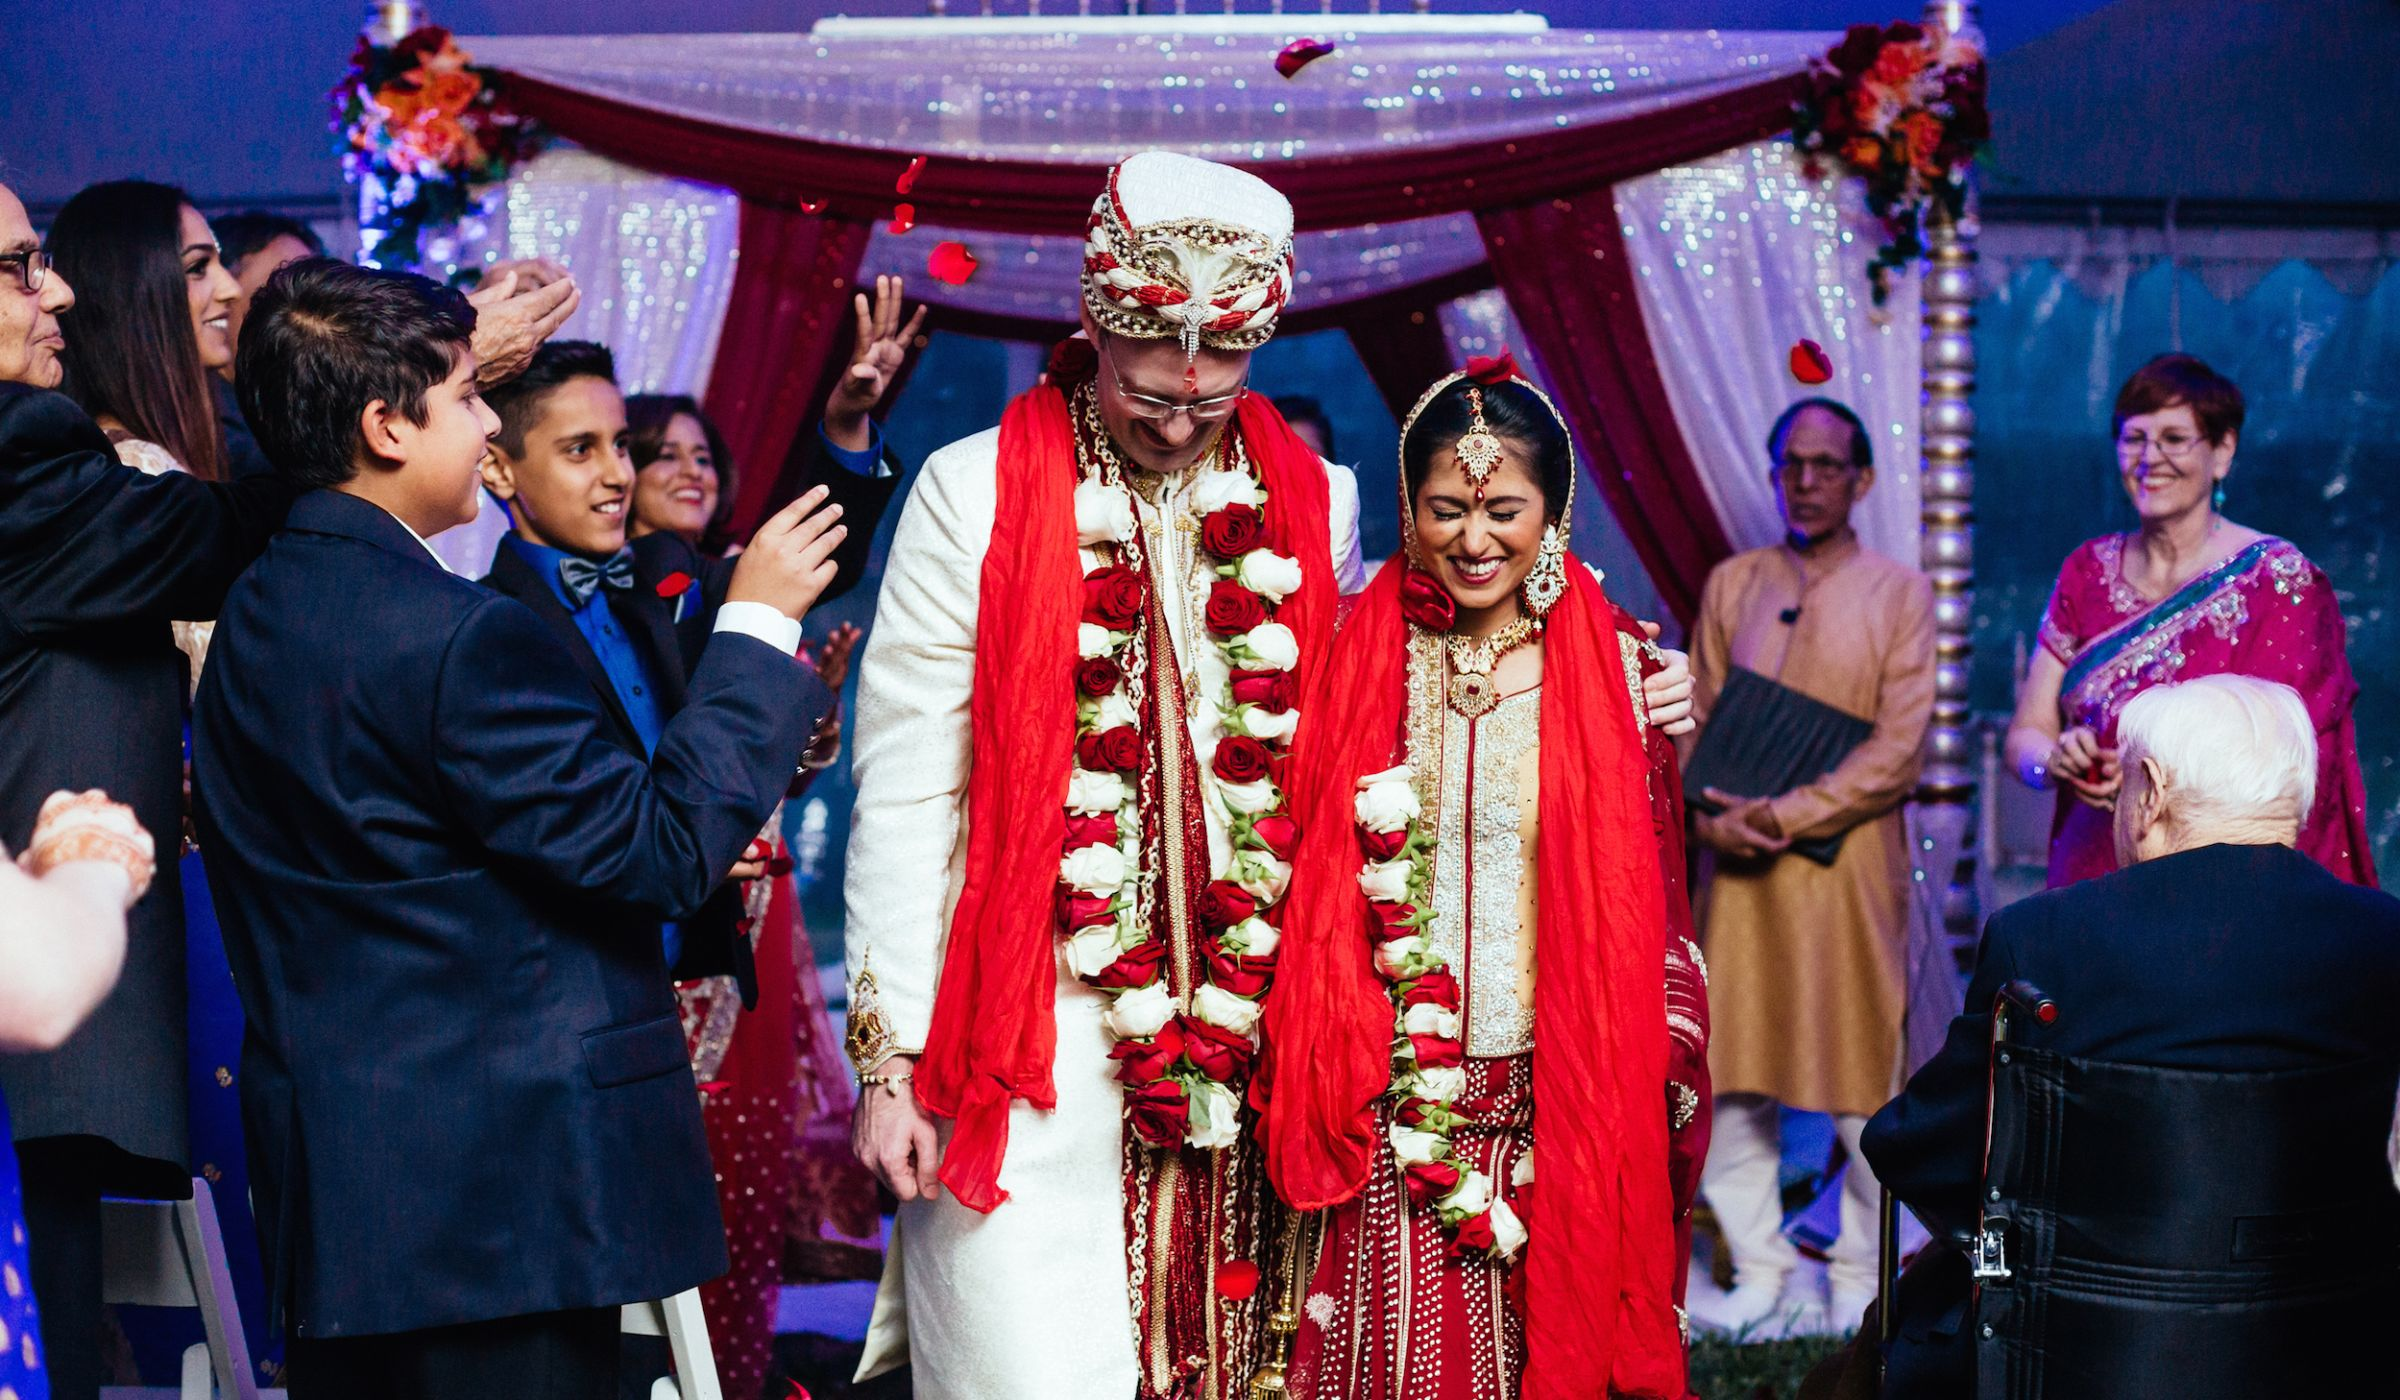 What To Wear An Indian Wedding As A Guest